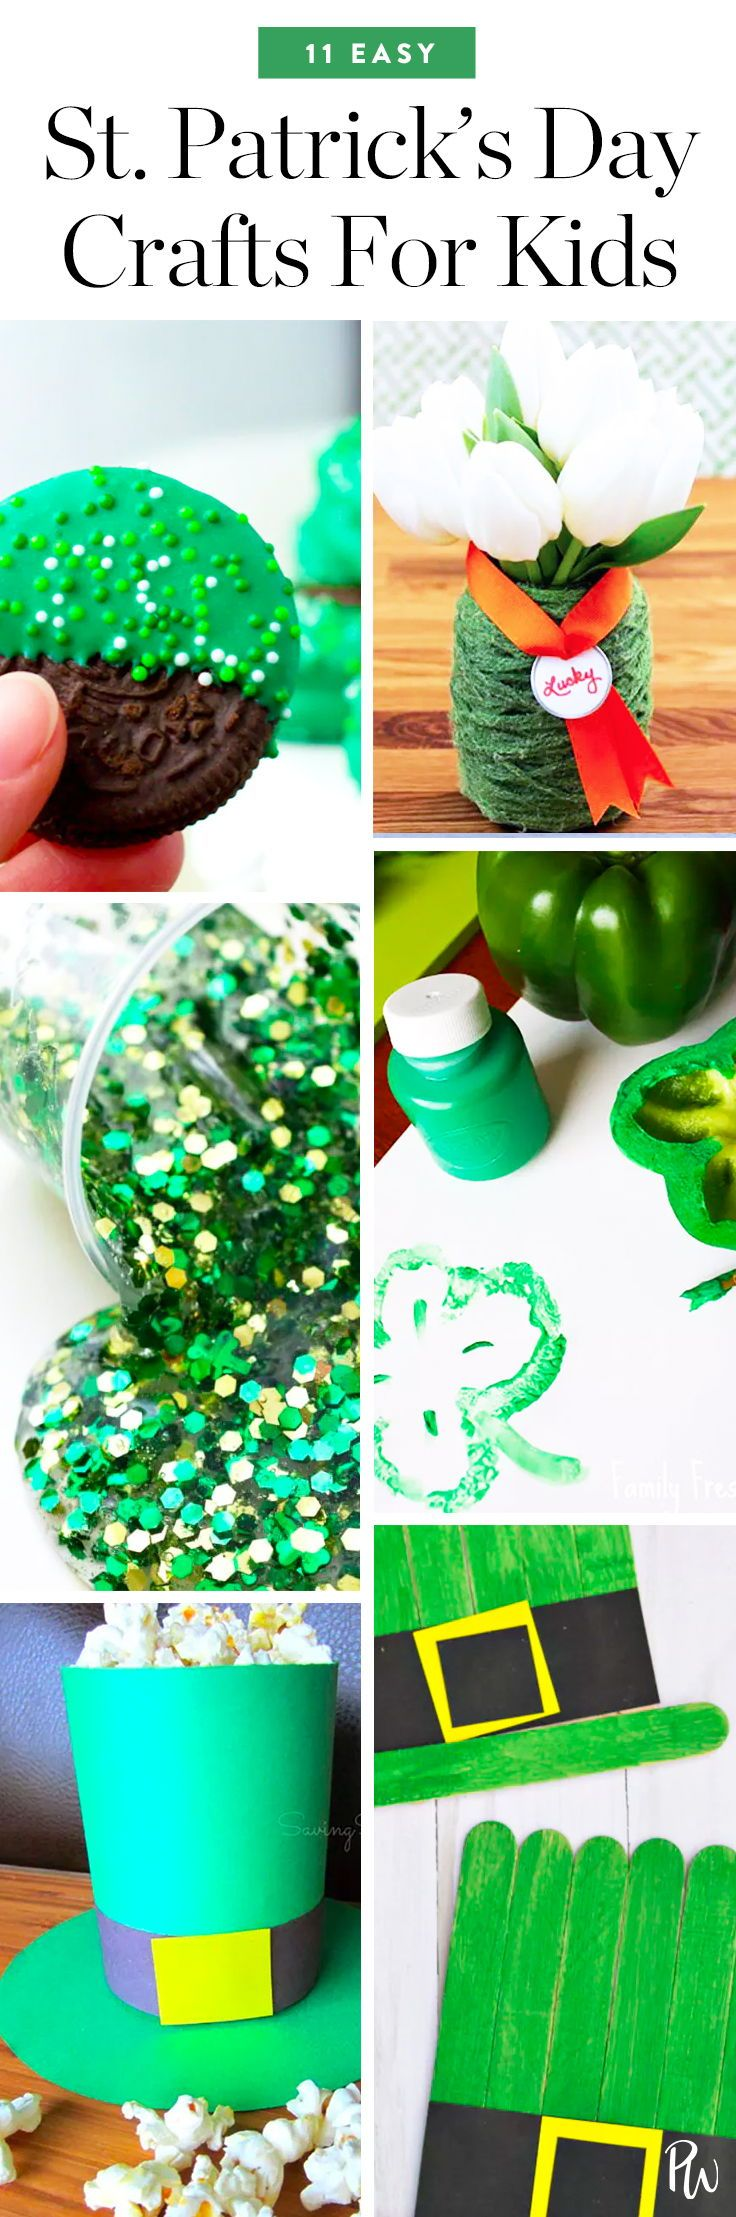 Life Hacks 11 Fun And Easy St Patricks Day Crafts For Kids